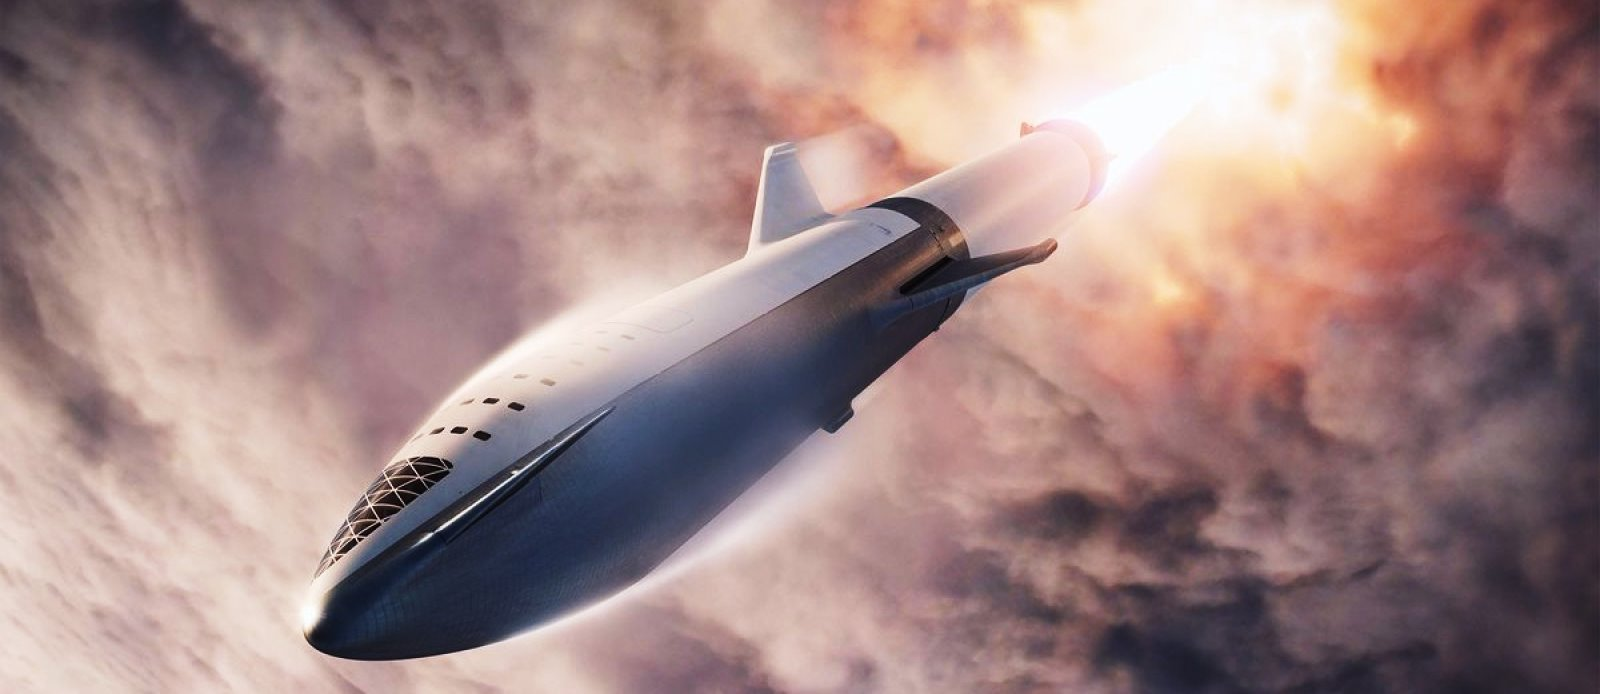 SpaceX Starship Big Falcon Rocket image credit SpaceX